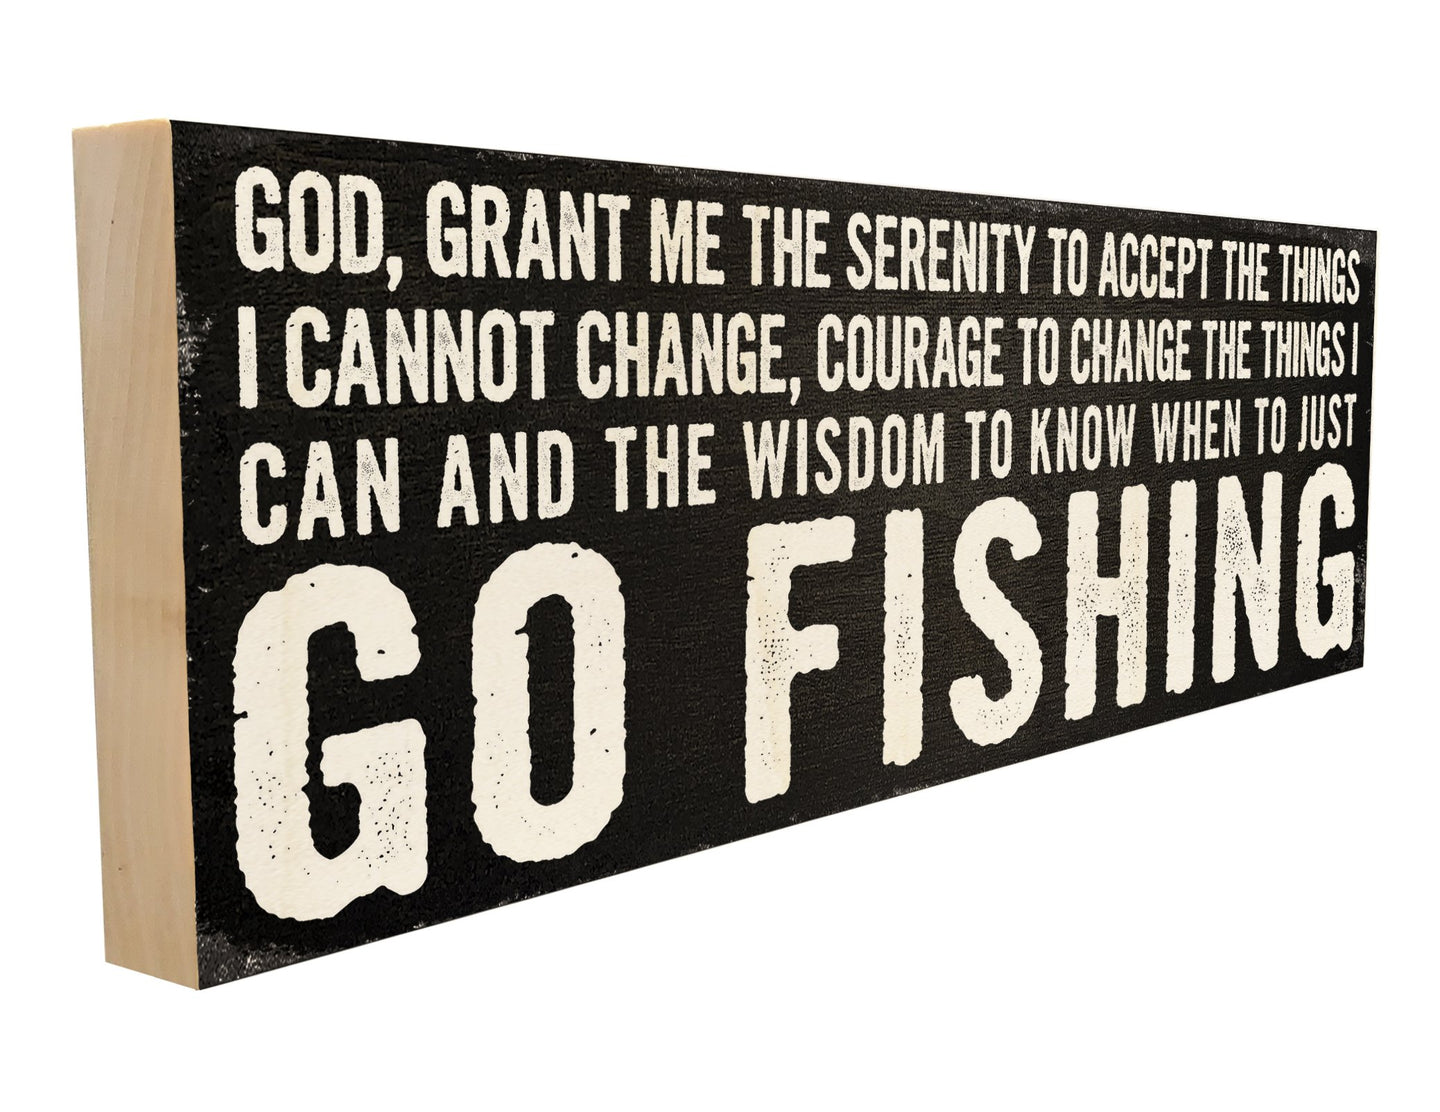 God, Grant Me the Serenity to Accept the Things I Cannot Change, Courage to Change the Things I Can and the wisdom to Know When to Go Fishing.